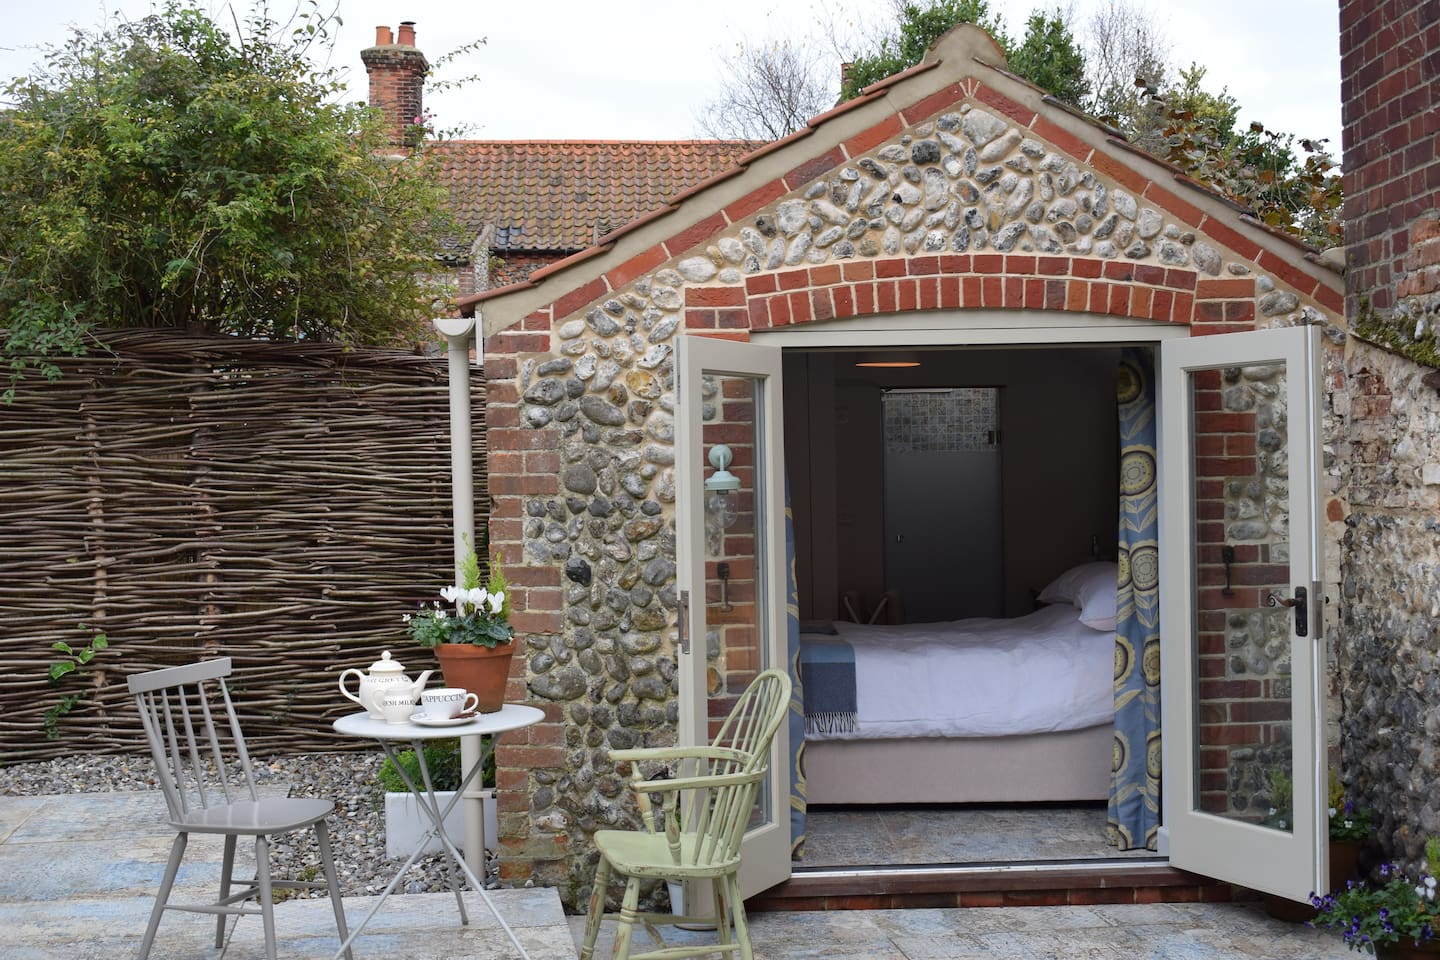 Open French doors on a sunny day with table and seating to enjoy the garden and have a drink.